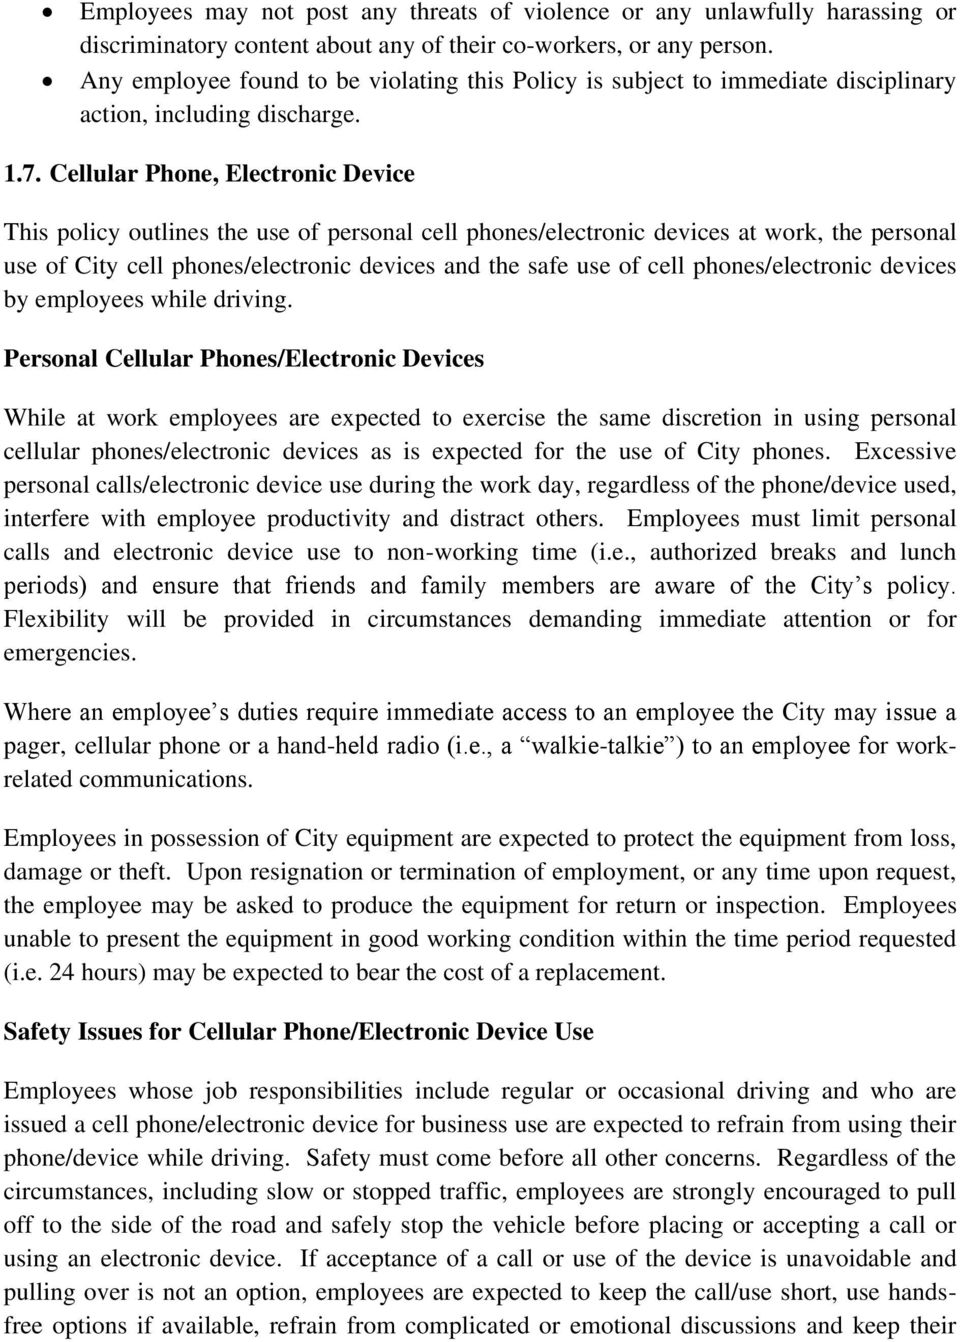 Cellular Phone, Electronic Device This policy outlines the use of personal cell phones/electronic devices at work, the personal use of City cell phones/electronic devices and the safe use of cell